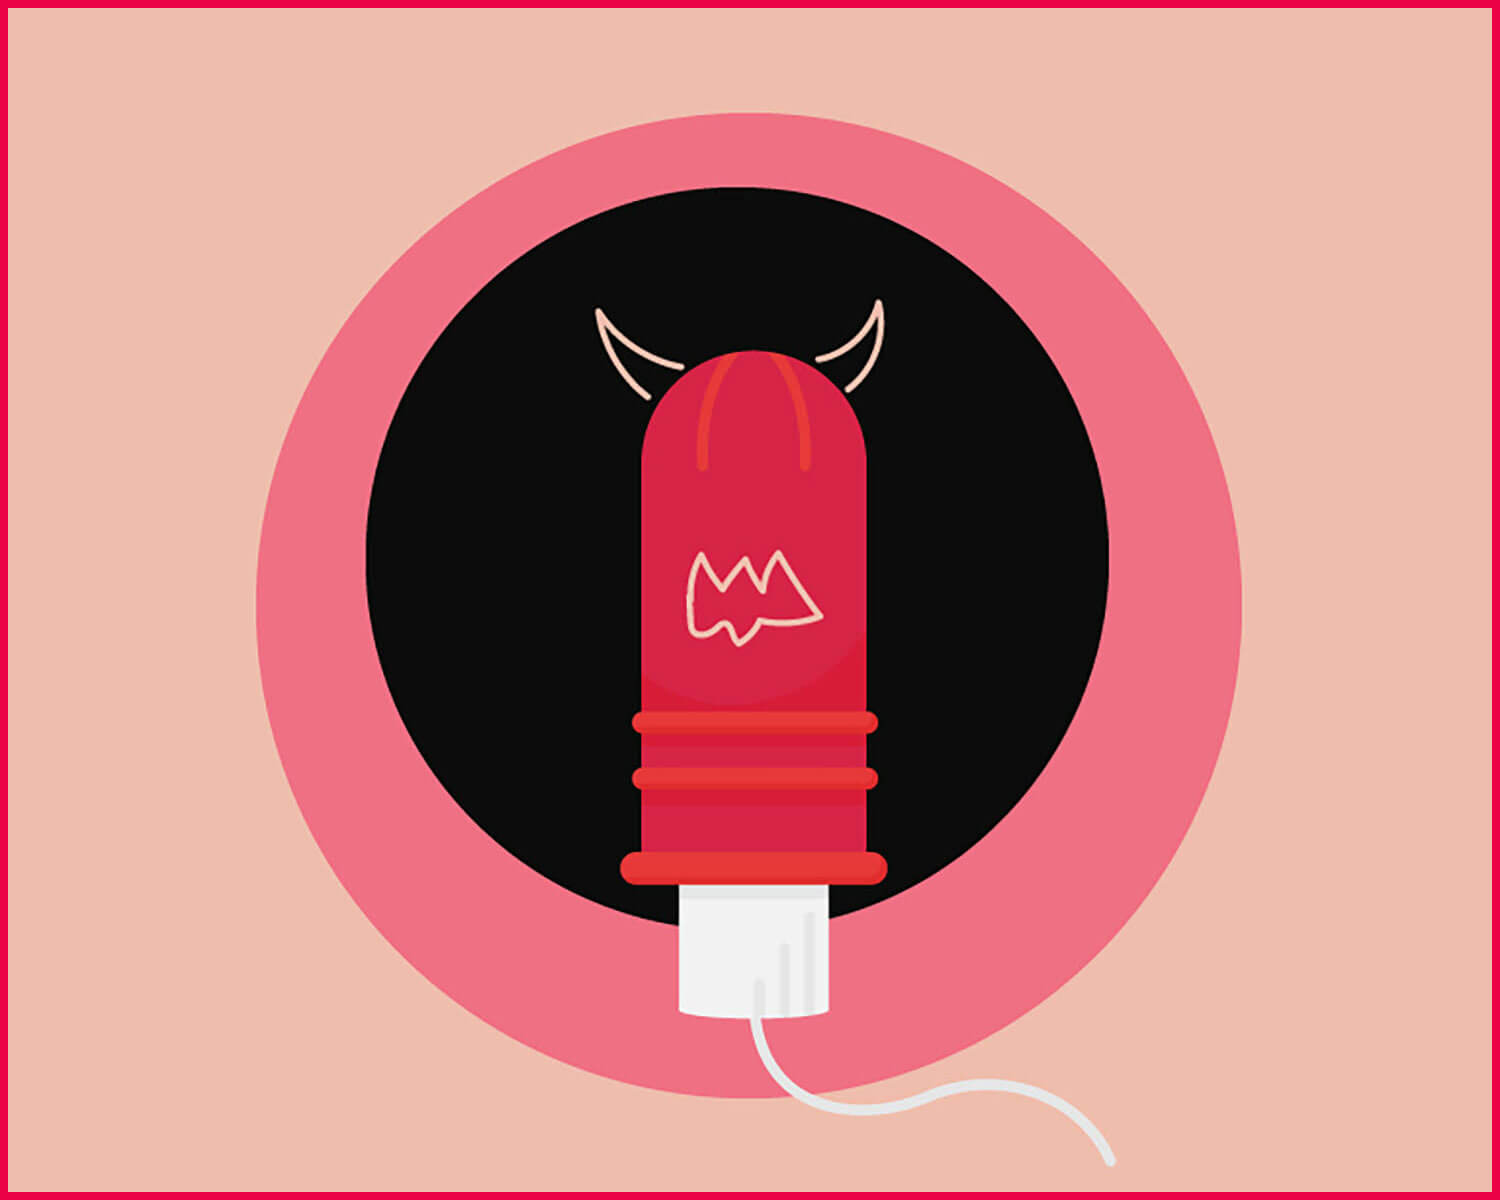 MySanity Myth of tampons representing devil symbol a thought by an individual